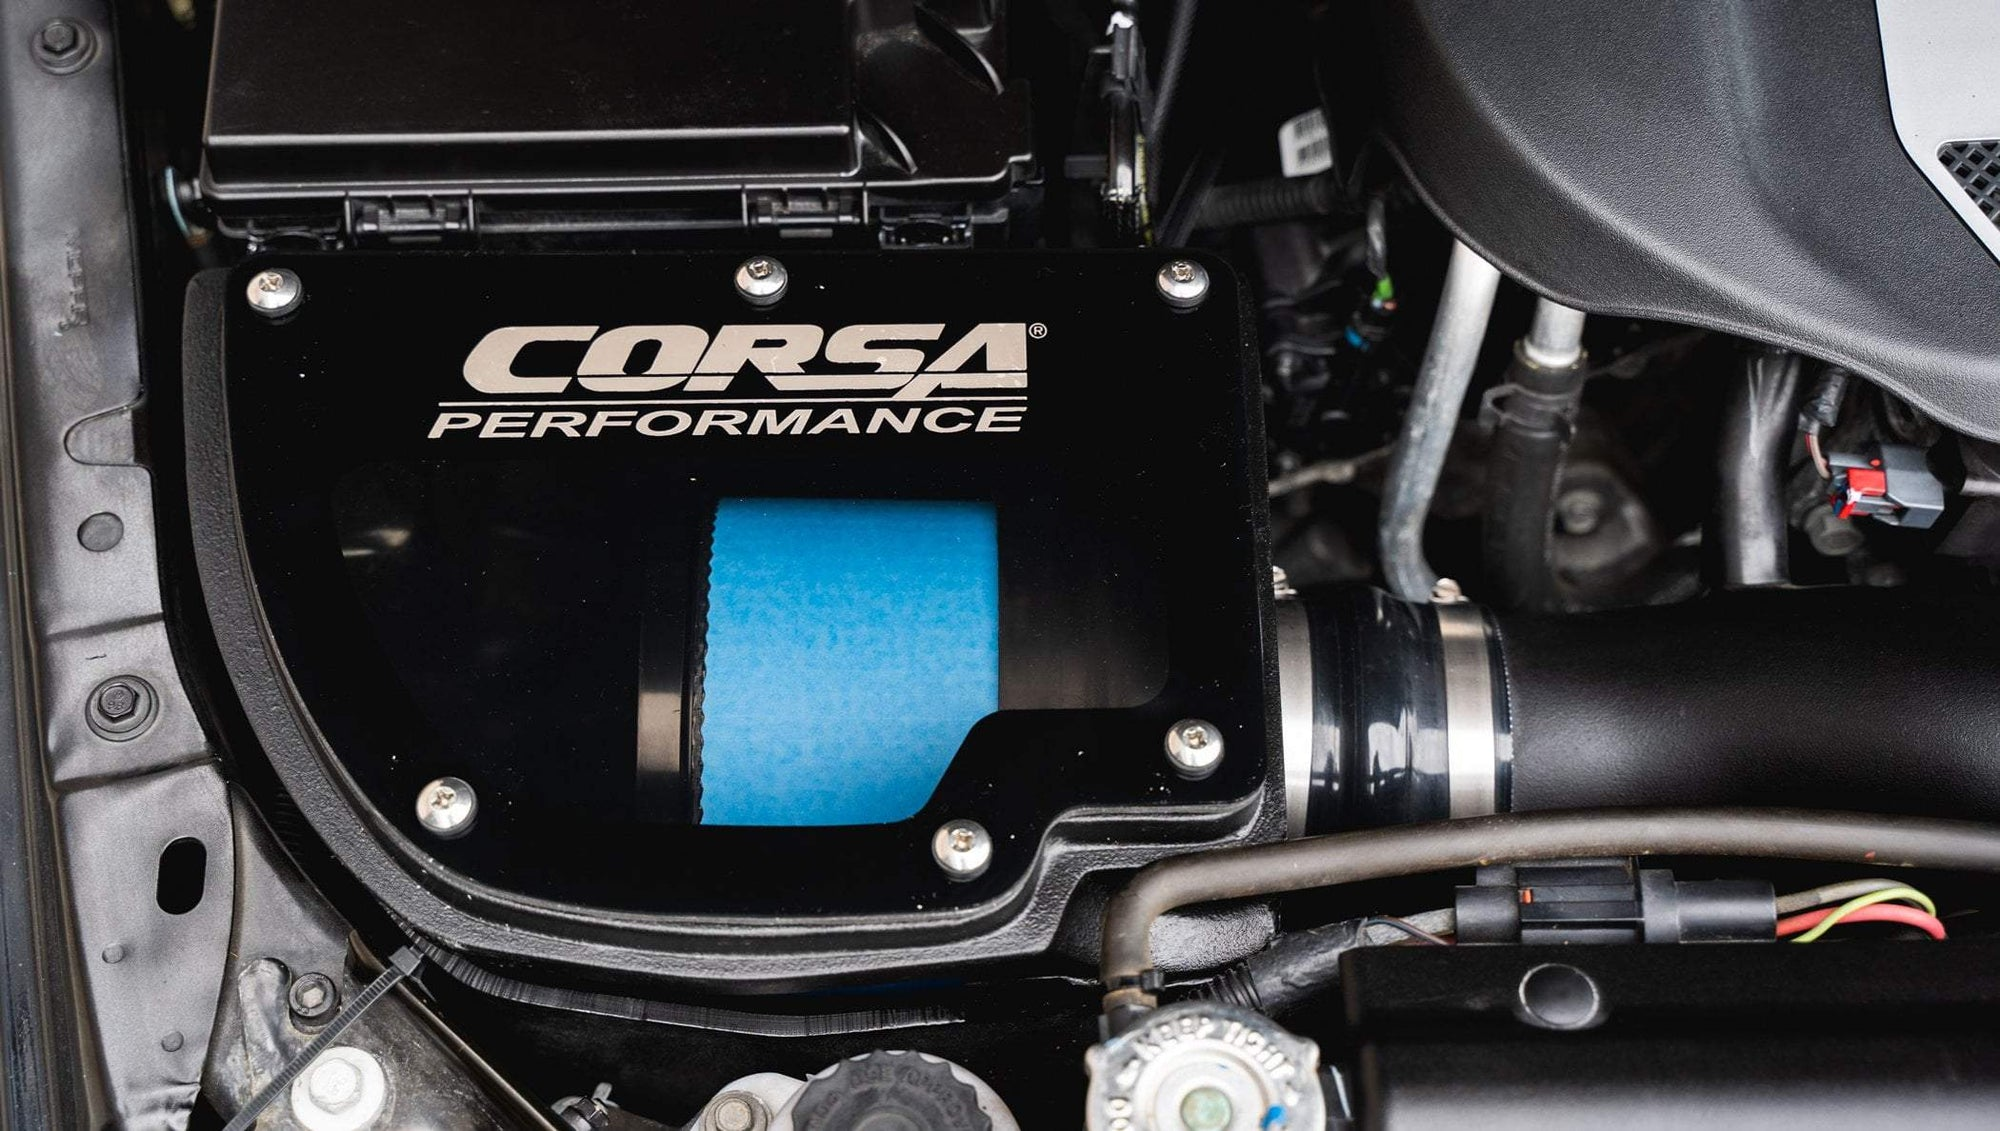 CORSA PERFORMANCE Air Intake 2012-2018 Jeep Wrangler JK, PowerCore Closed Box Cold Air Intake (44412)